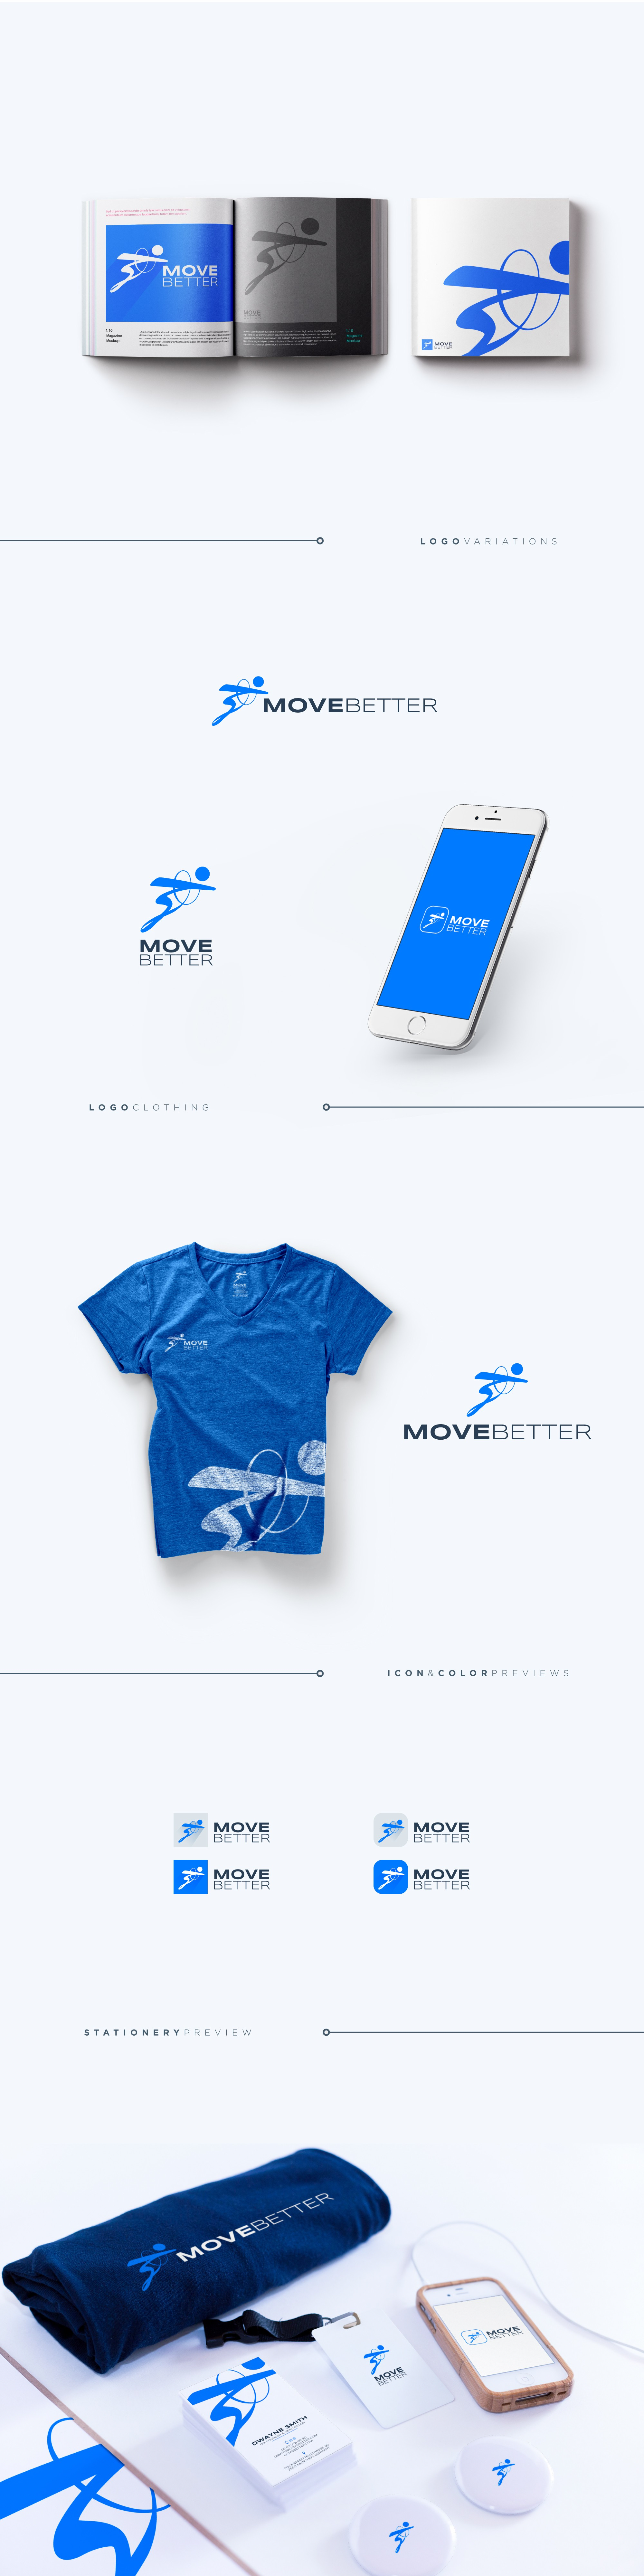 Dynamic Design for movment based physiotherapy business